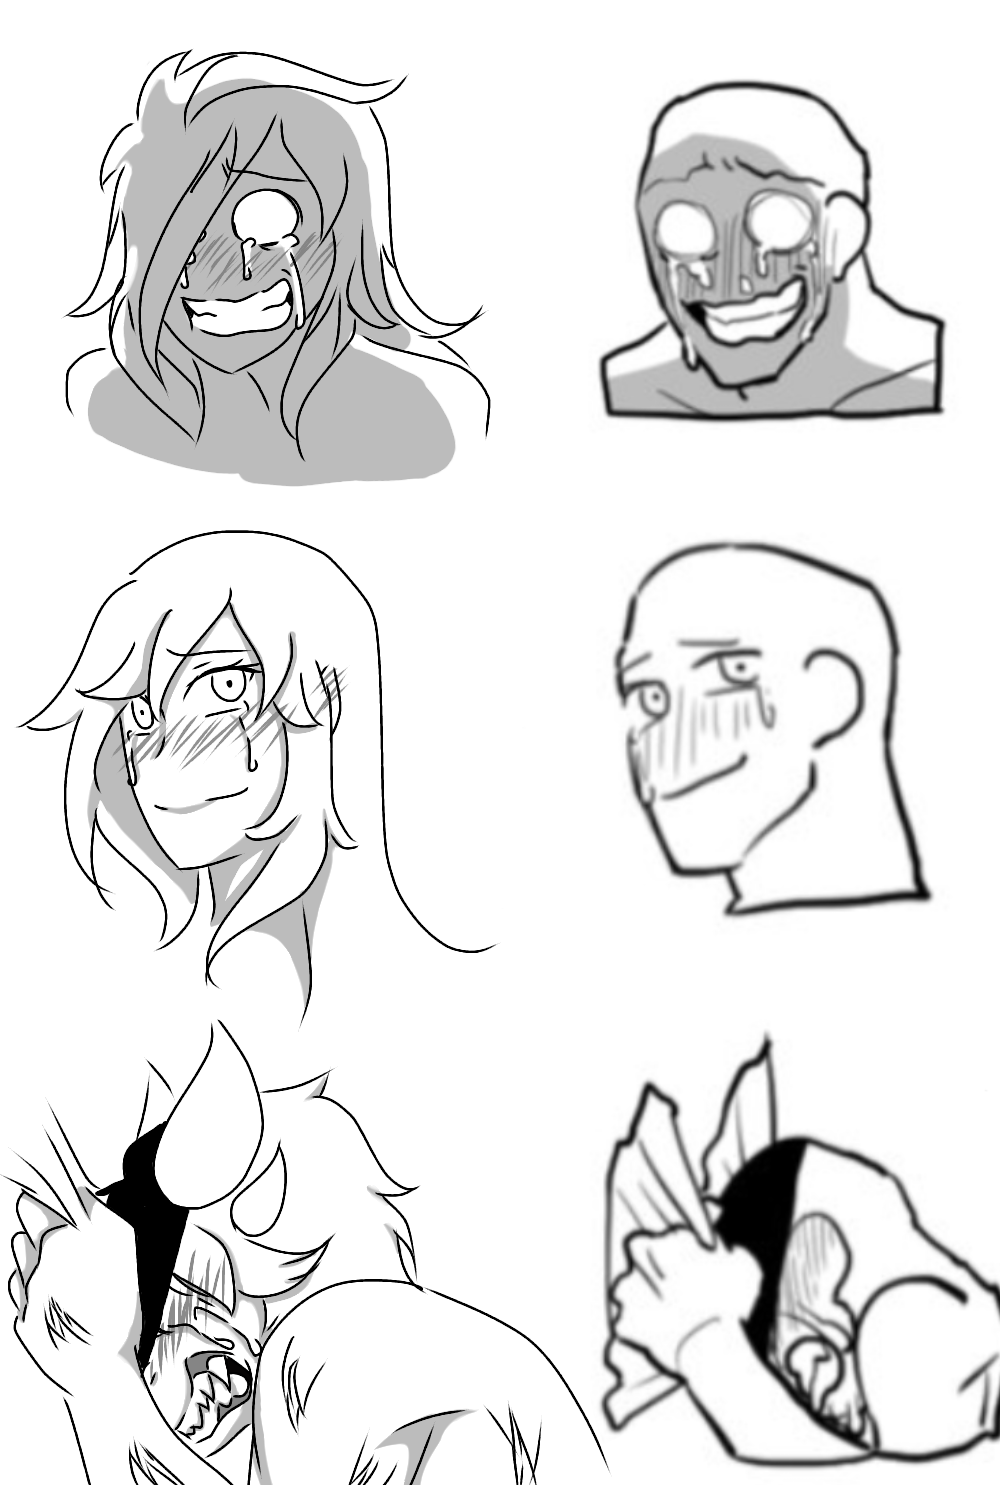 Sad meme faces 1 by nightmarequeenkasei on deviantart sad meme faces 1 by nightmarequeenkasei sad meme faces 1 by nightmarequeenkasei voltagebd Image collections